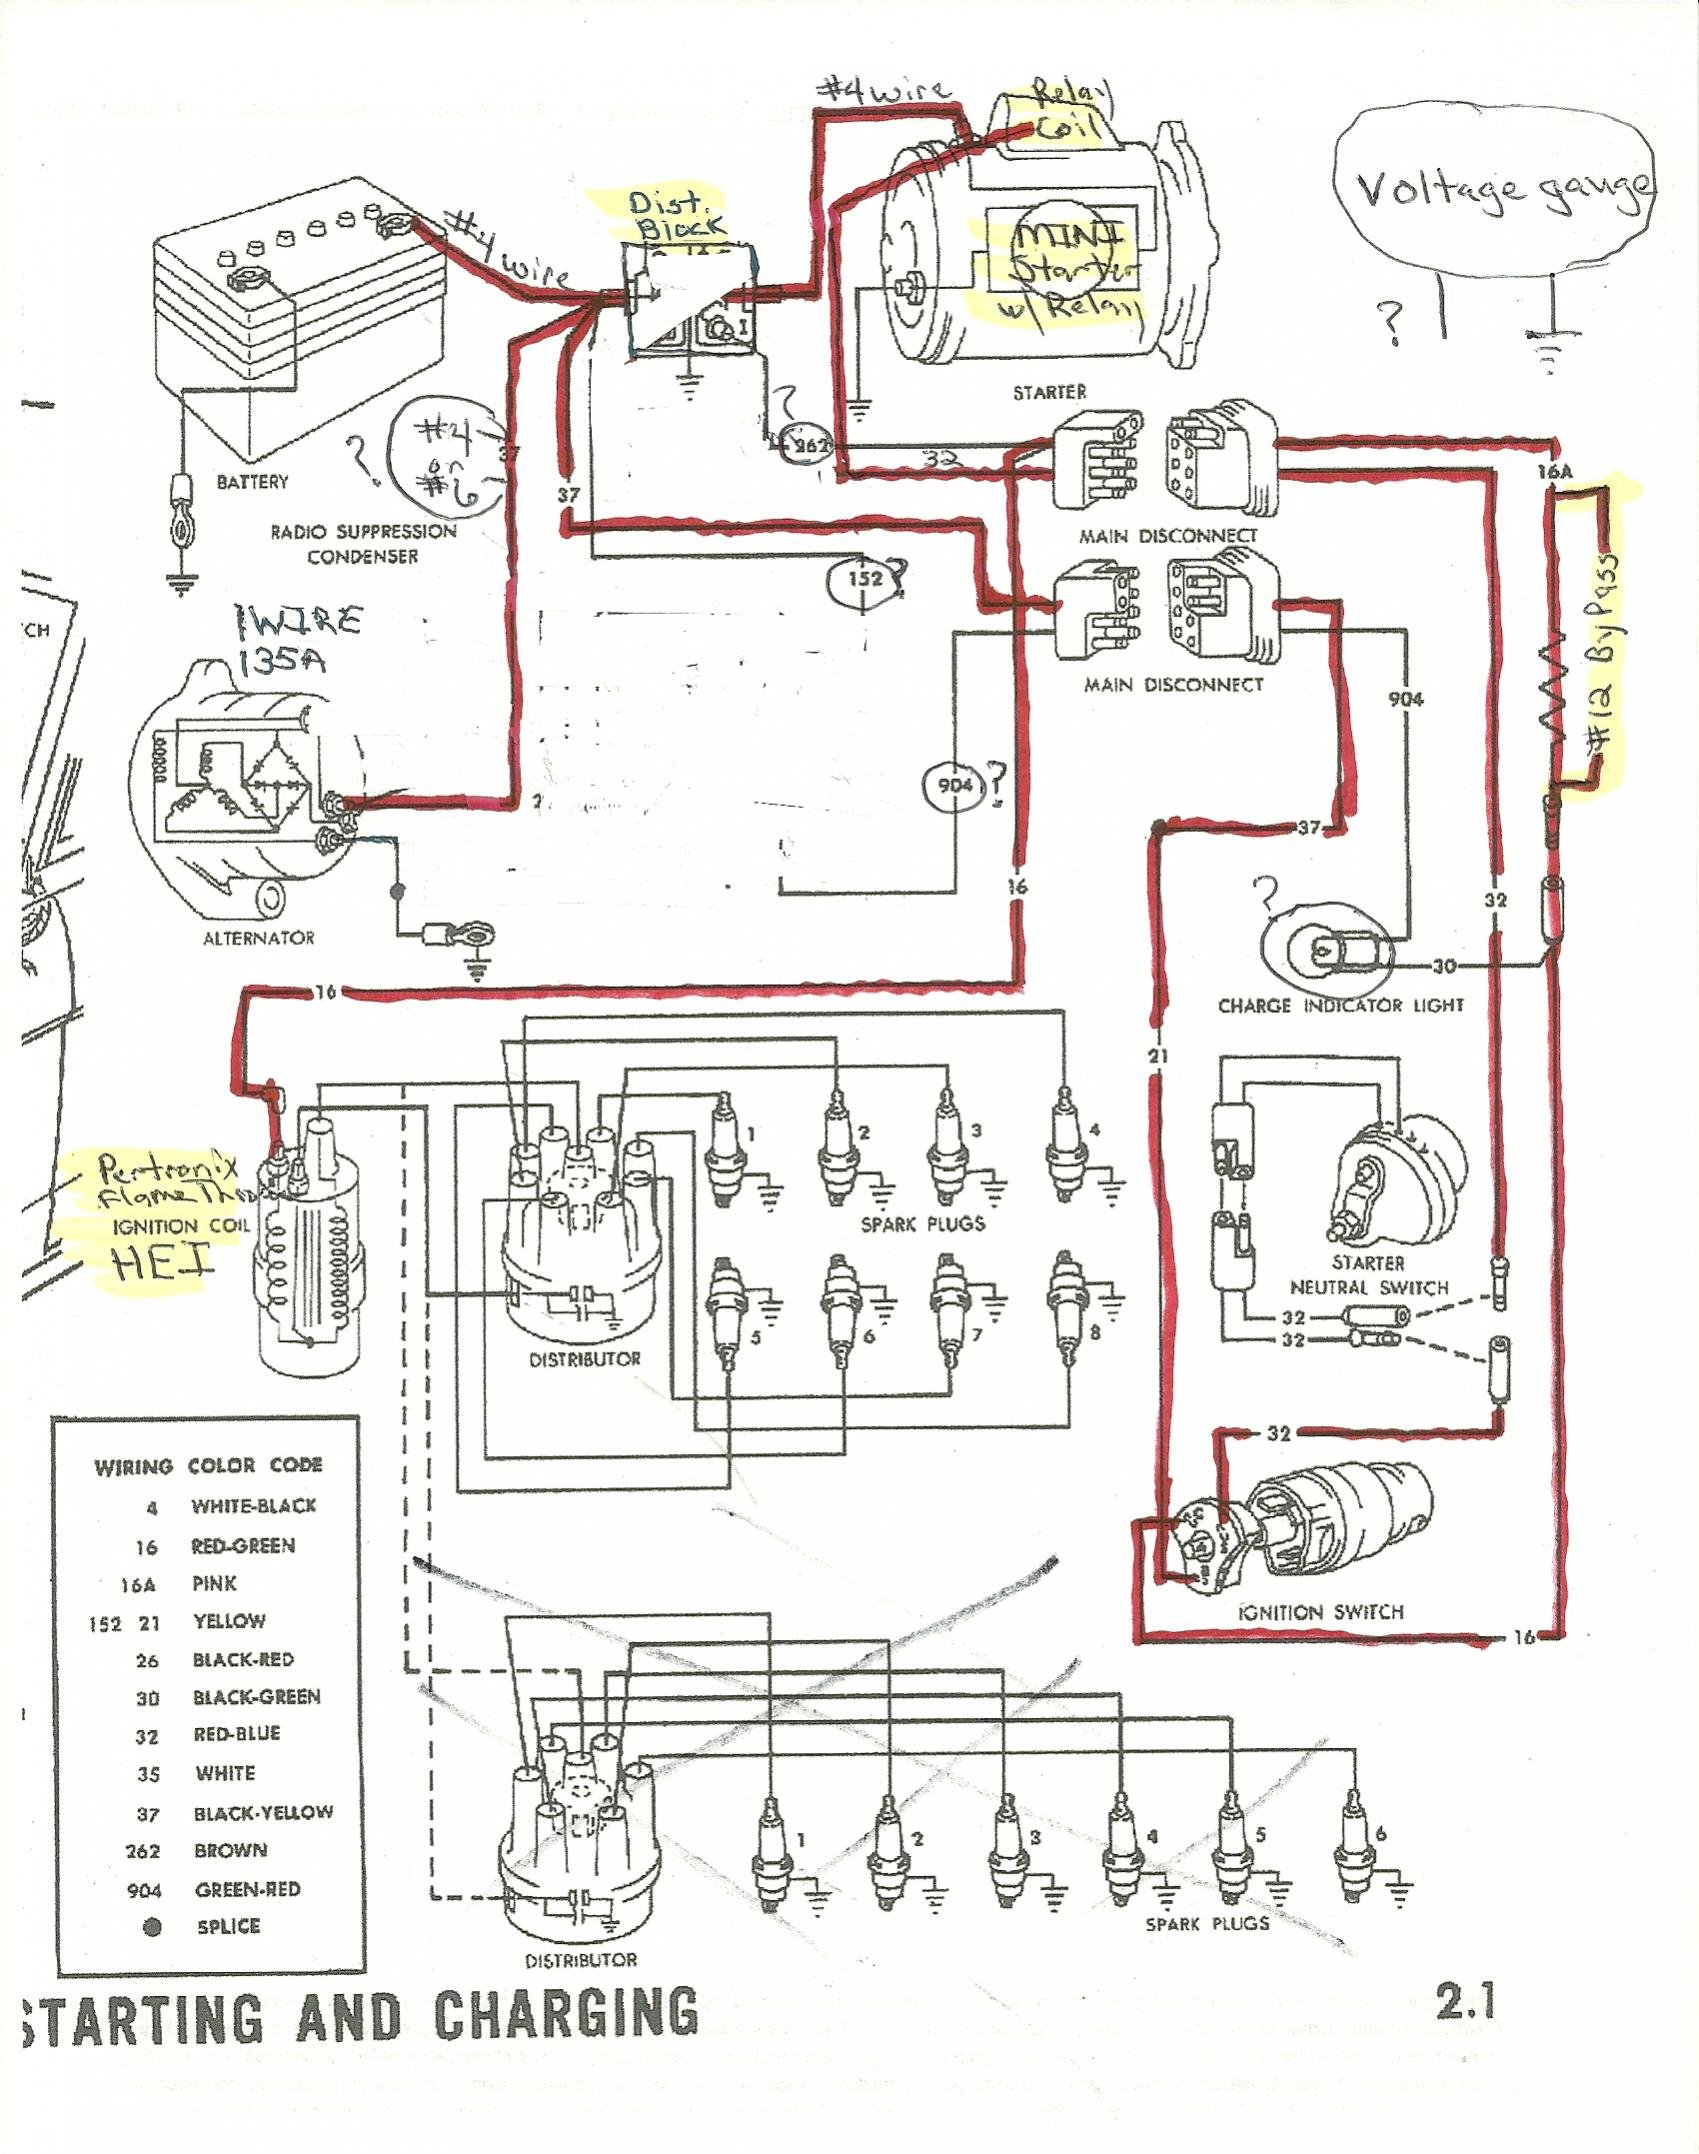 1990 Ford 302 Distributor Wiring Diagrams Diagram Libraries Alternator For Chevy Truck Mustang Harness Diagrams65 Voltage Regulator